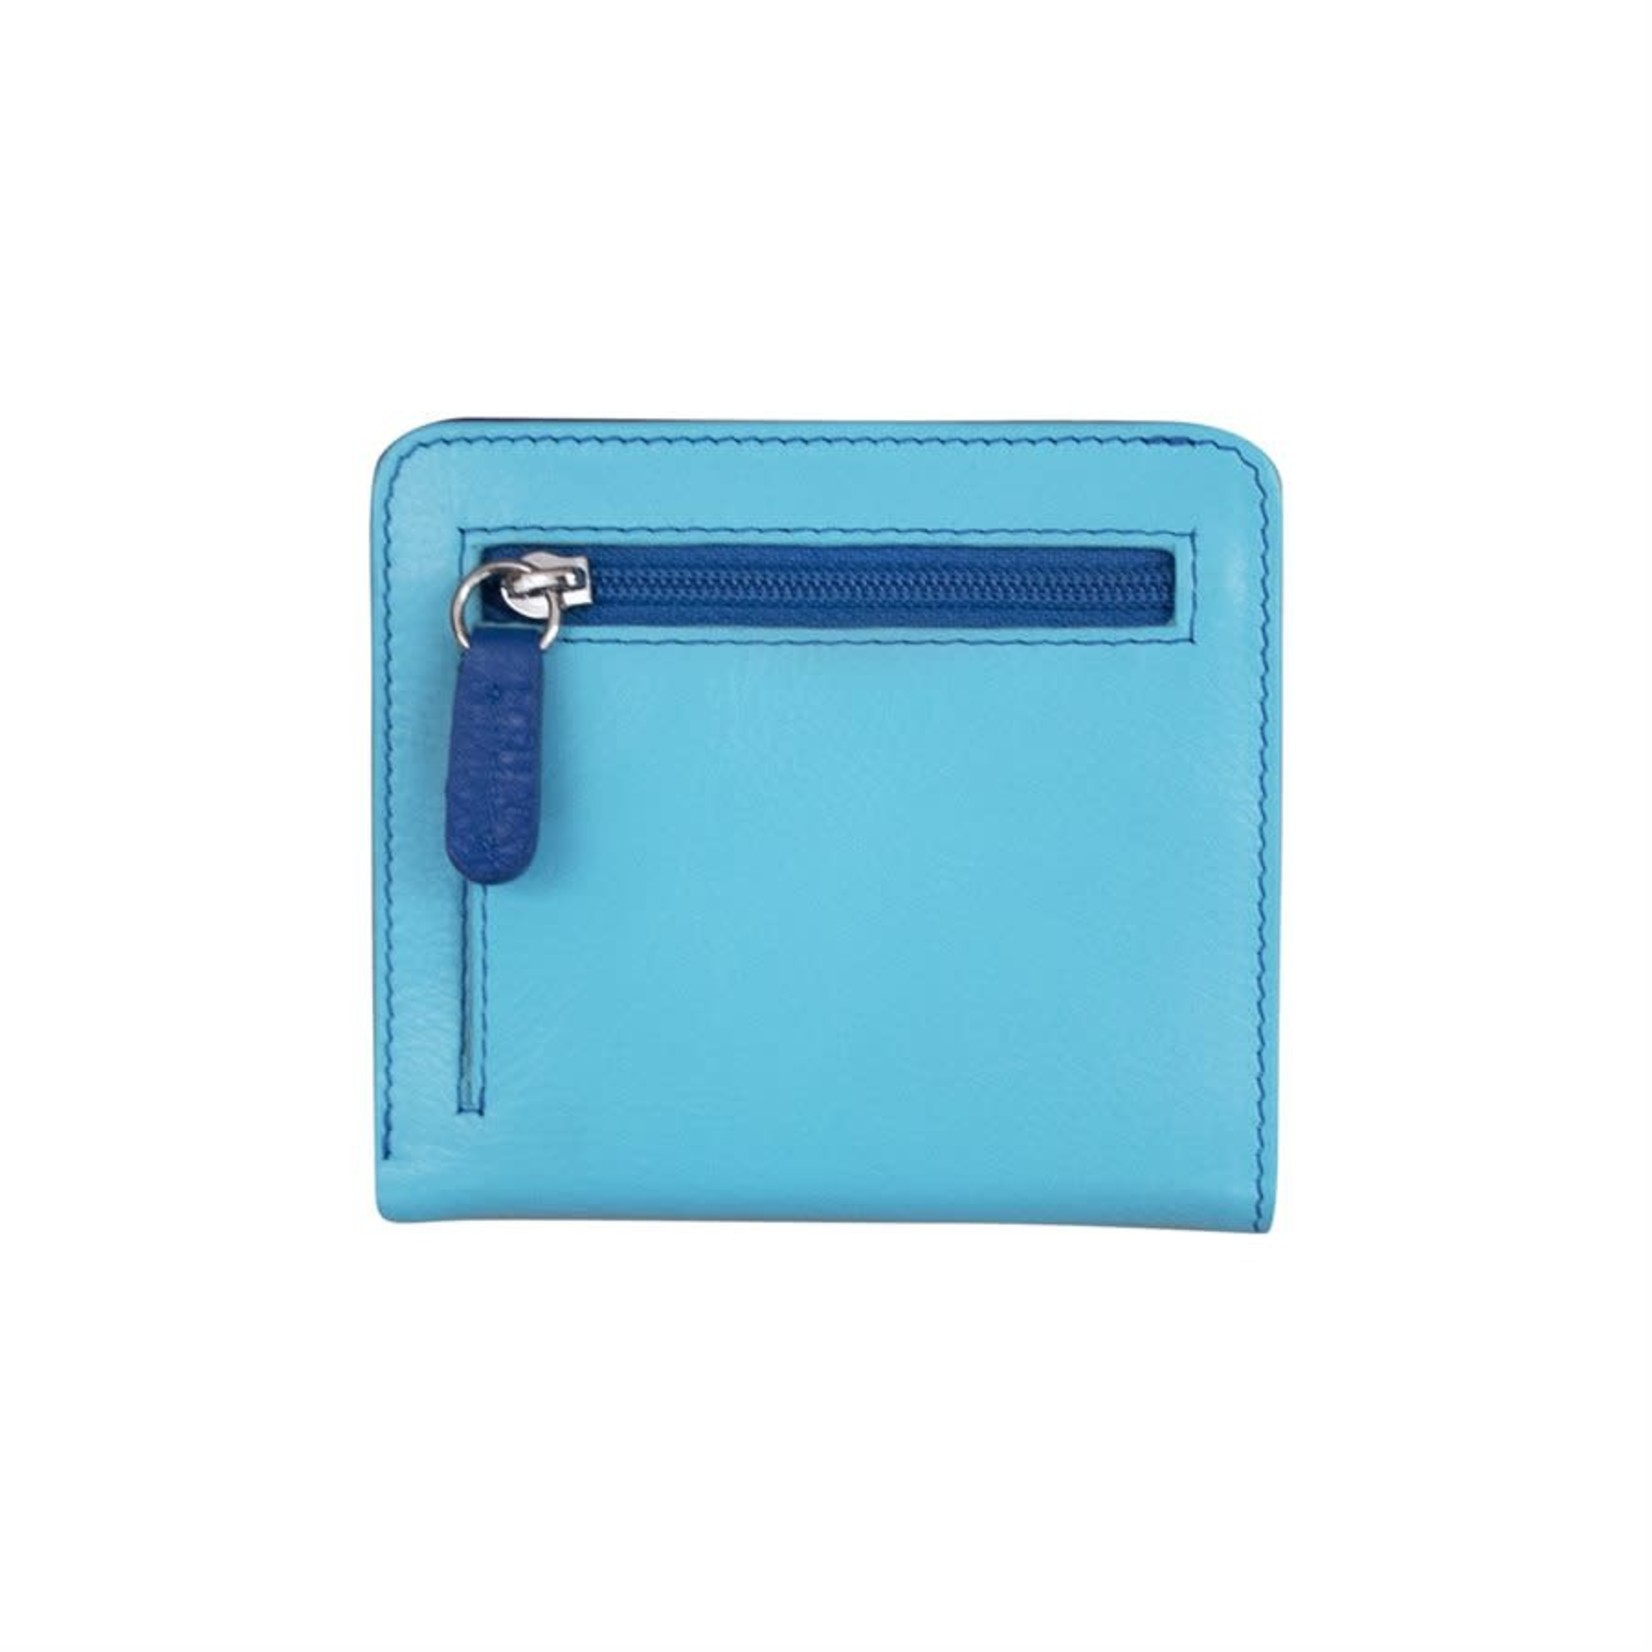 Leather Handbags and Accessories 7831 Mykonos - RFID Mini Wallet Two Toned